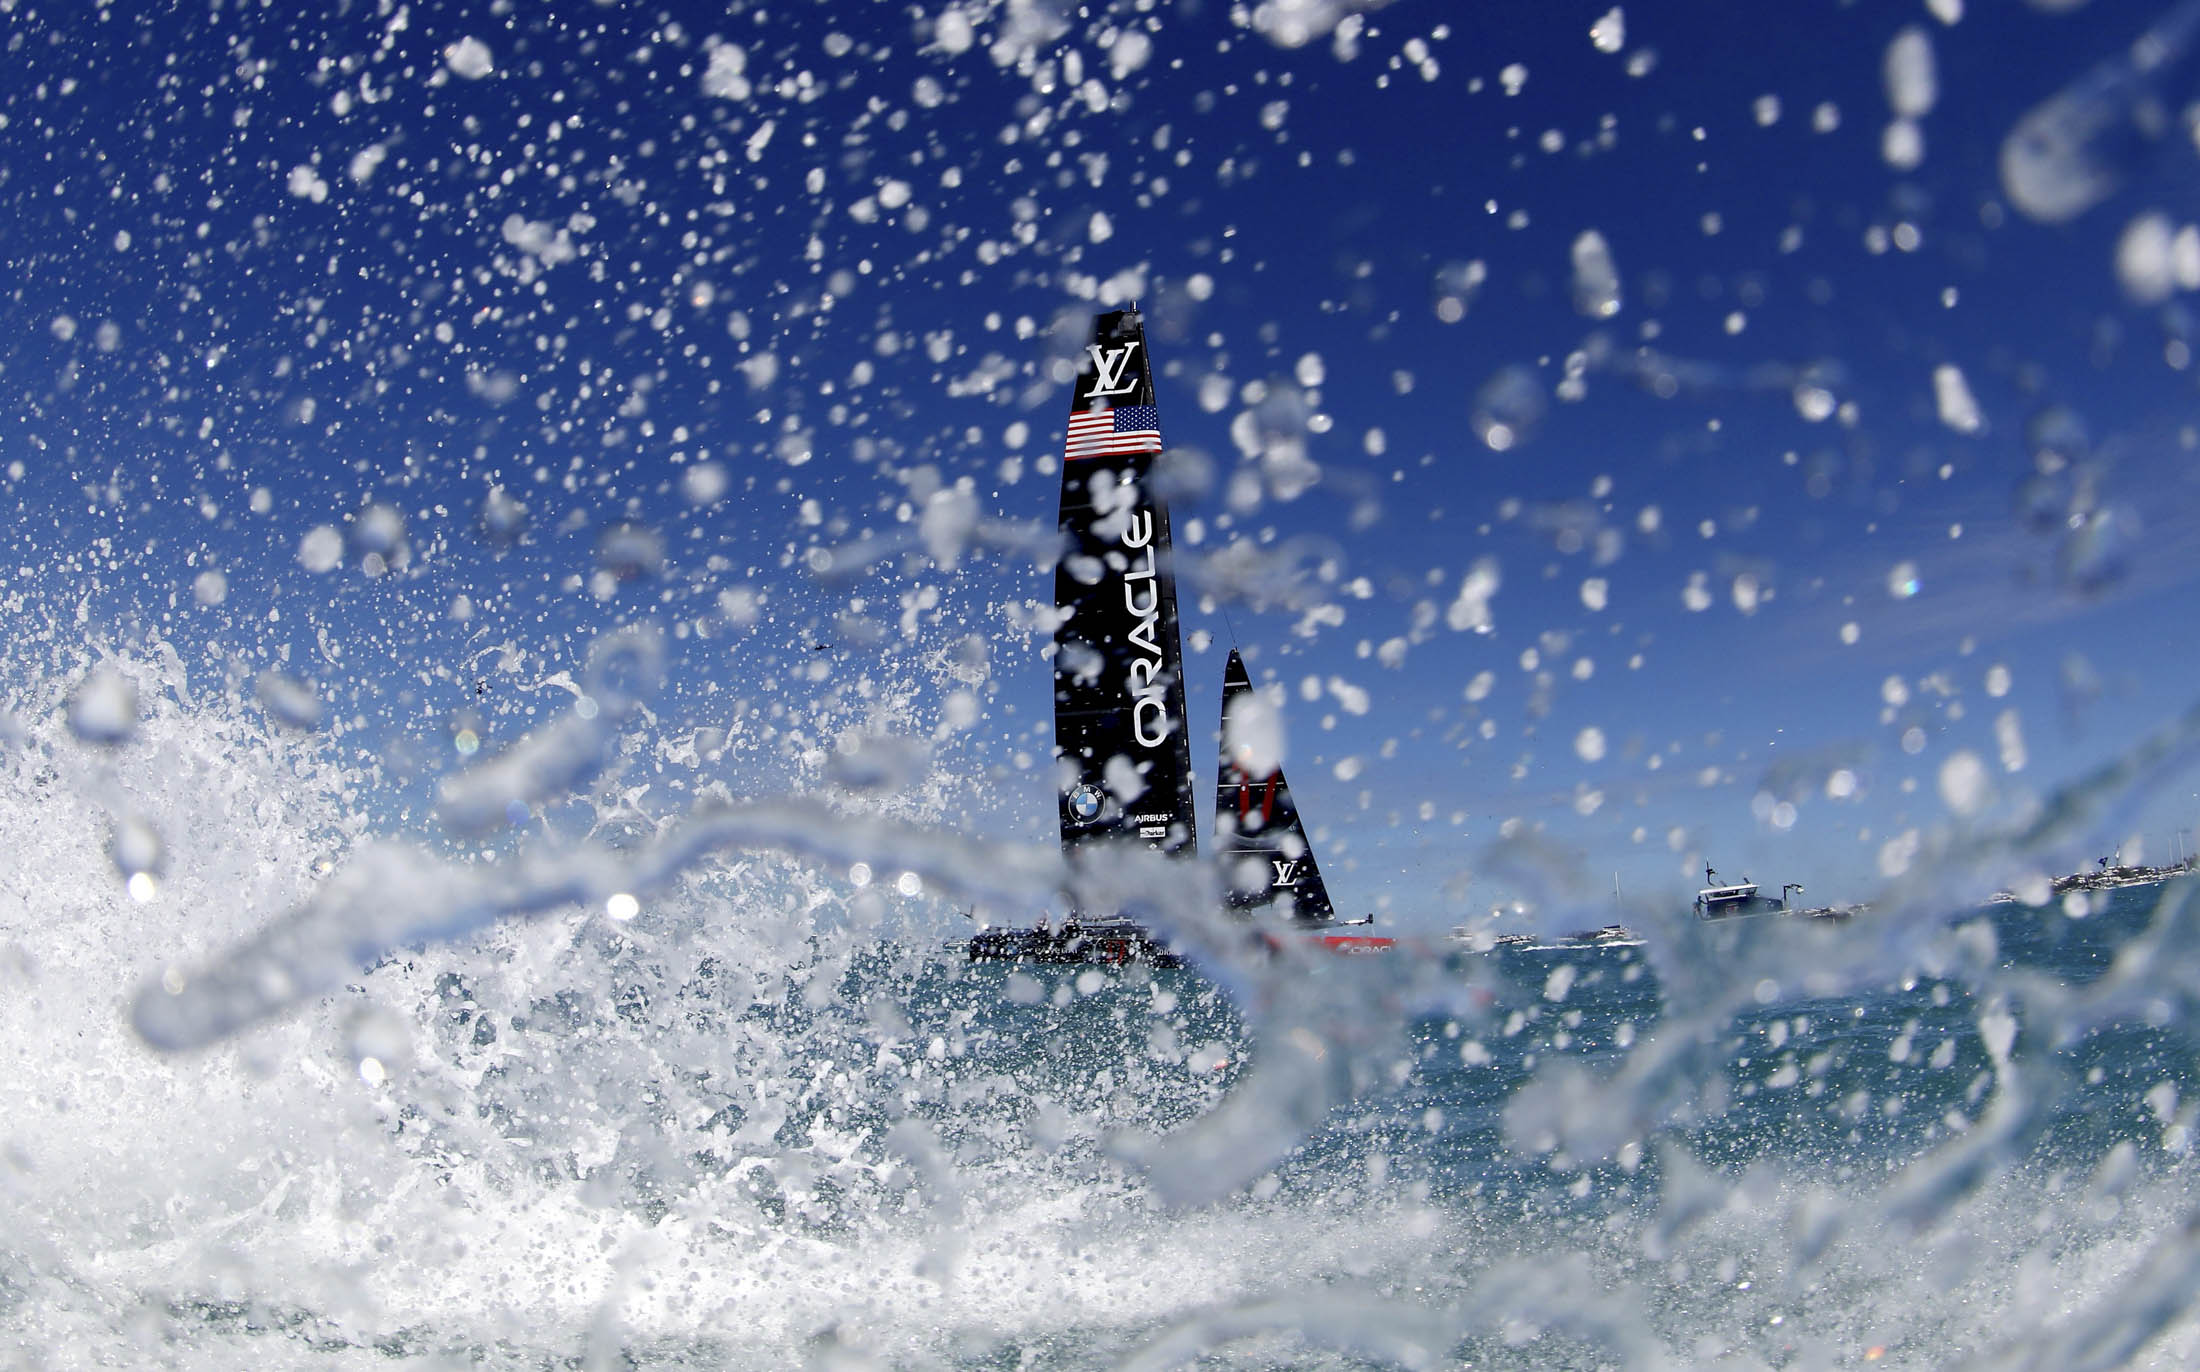 Thrills, Spills, and Royals: All the Action From the America's Cup in Bermuda